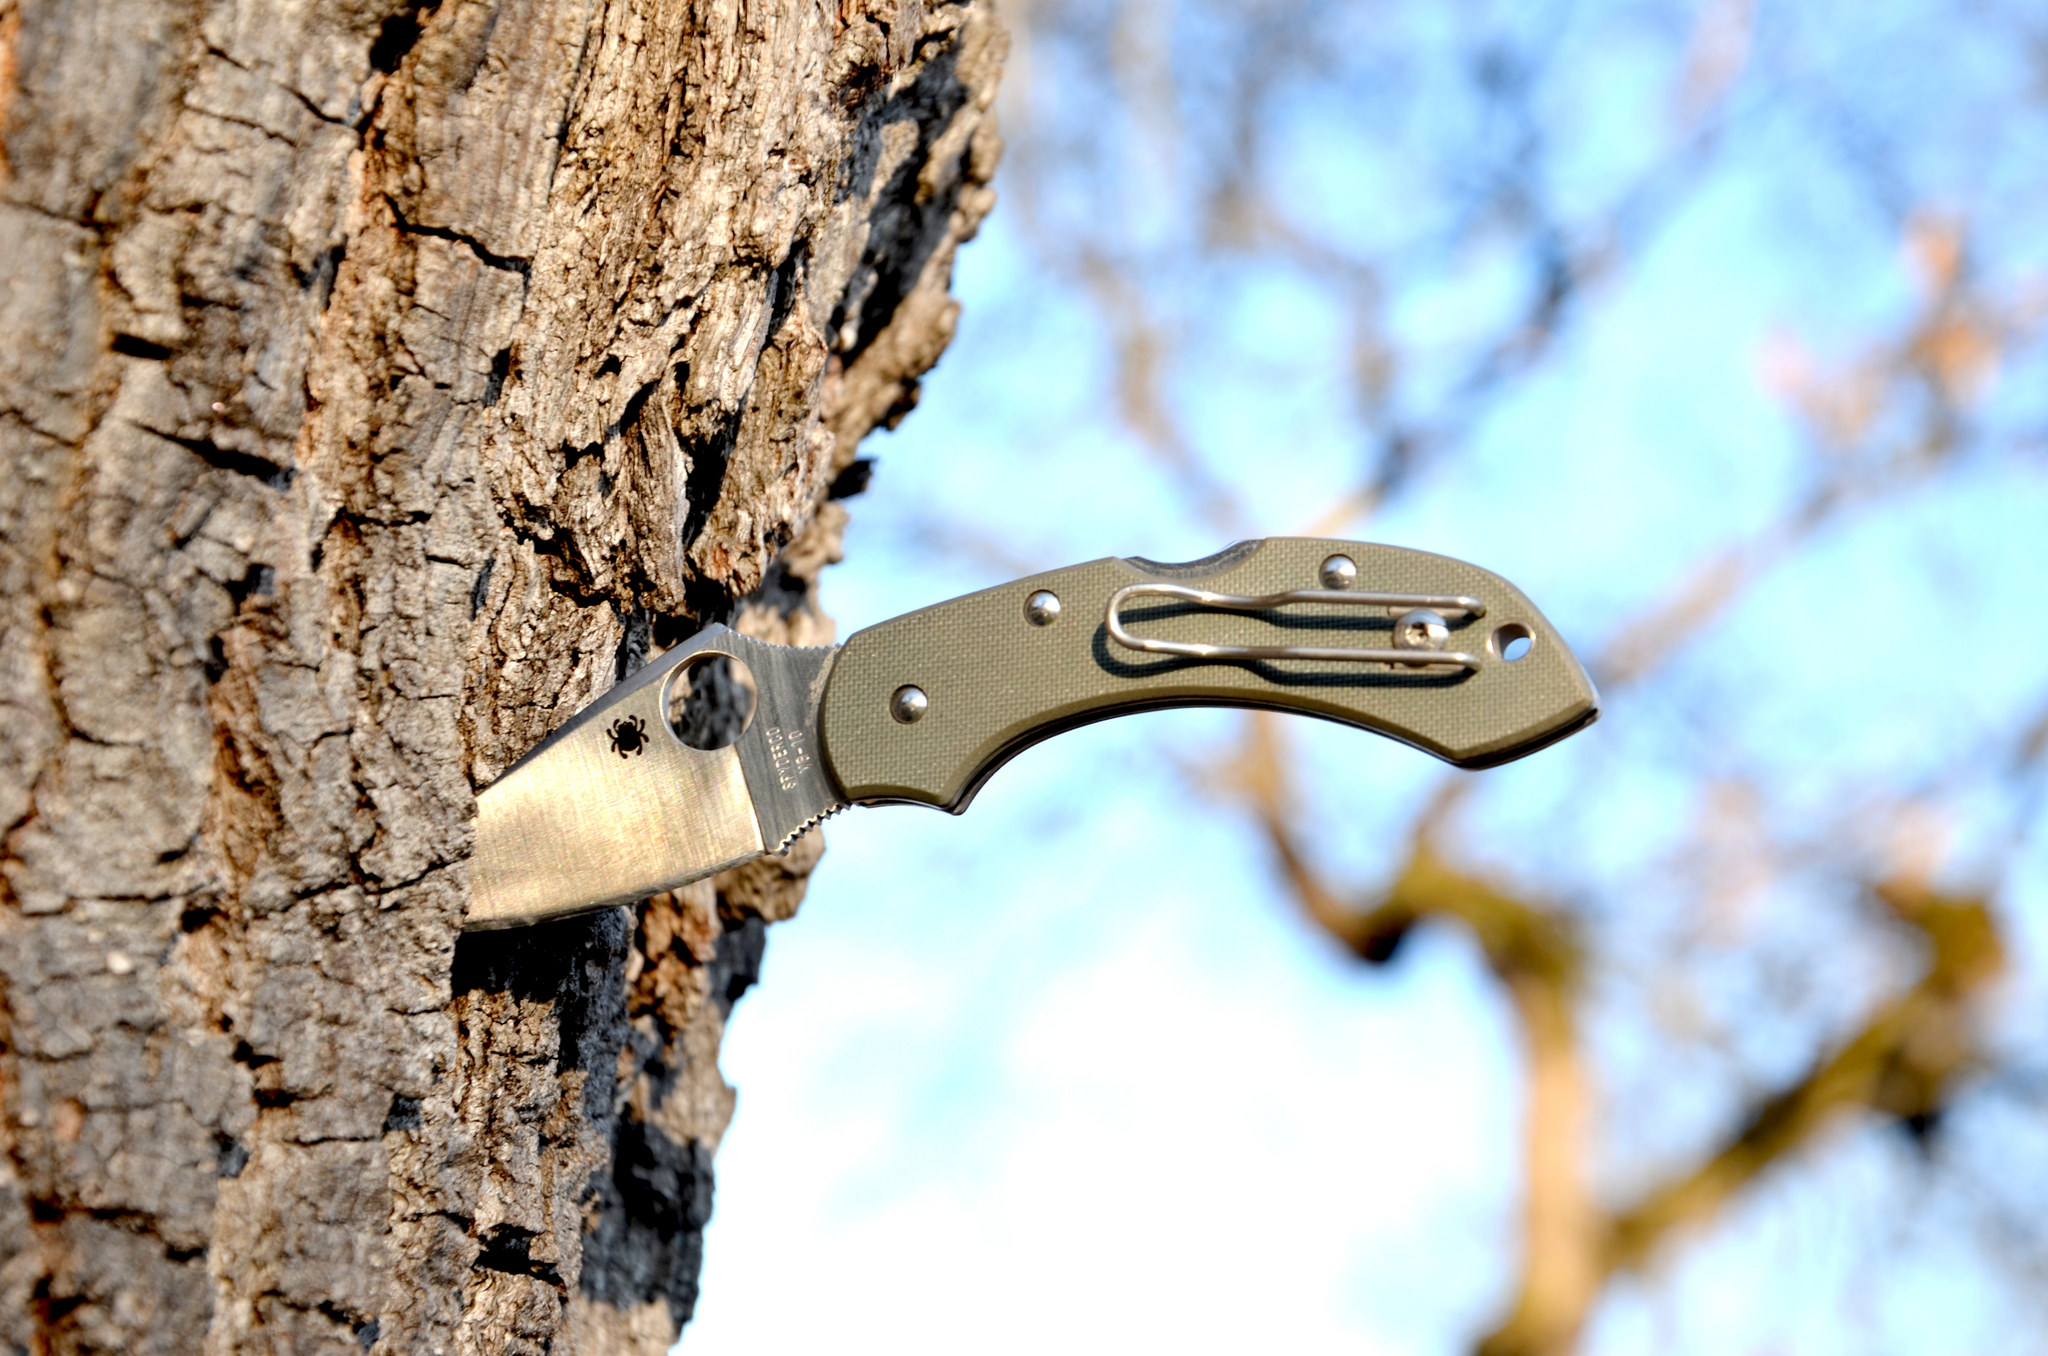 Blade Boot Camp: A Buyer's Guide To Choosing Your Knife